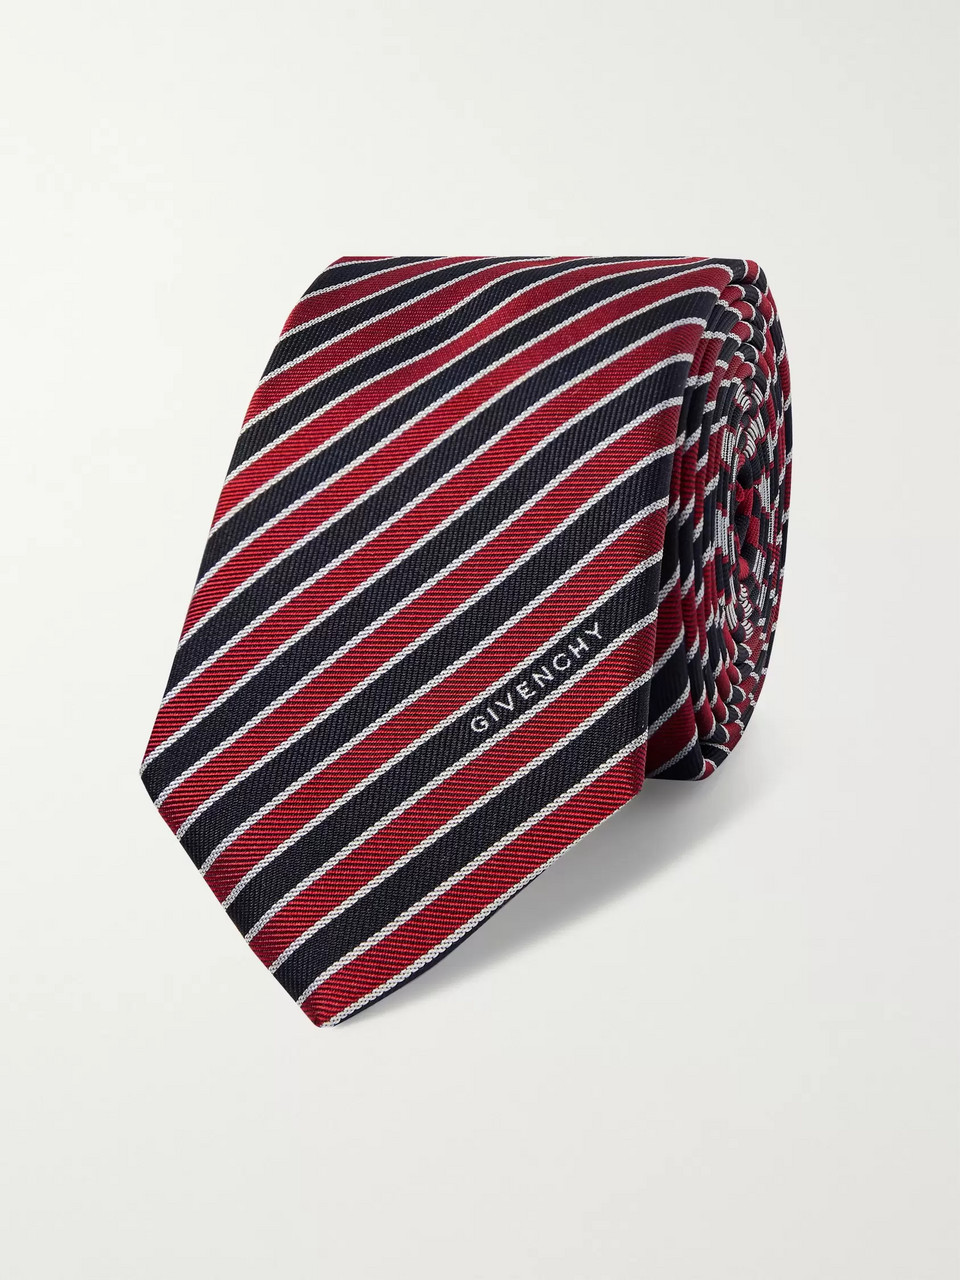 Givenchy 6.5cm Striped Silk Tie